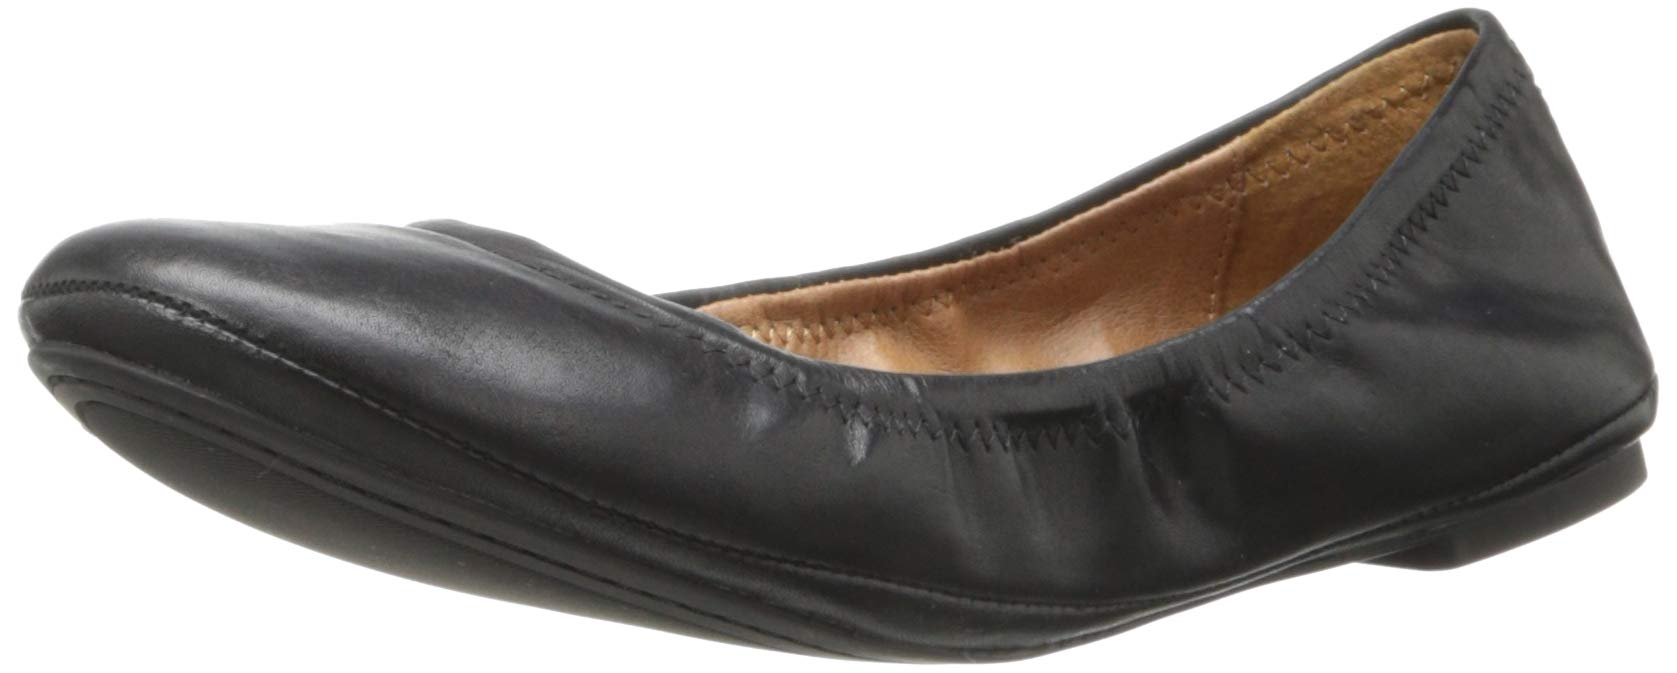 Lucky Brand Women's Lucky Emmie Ballet Flat, Black/Leather, 8.5 M US